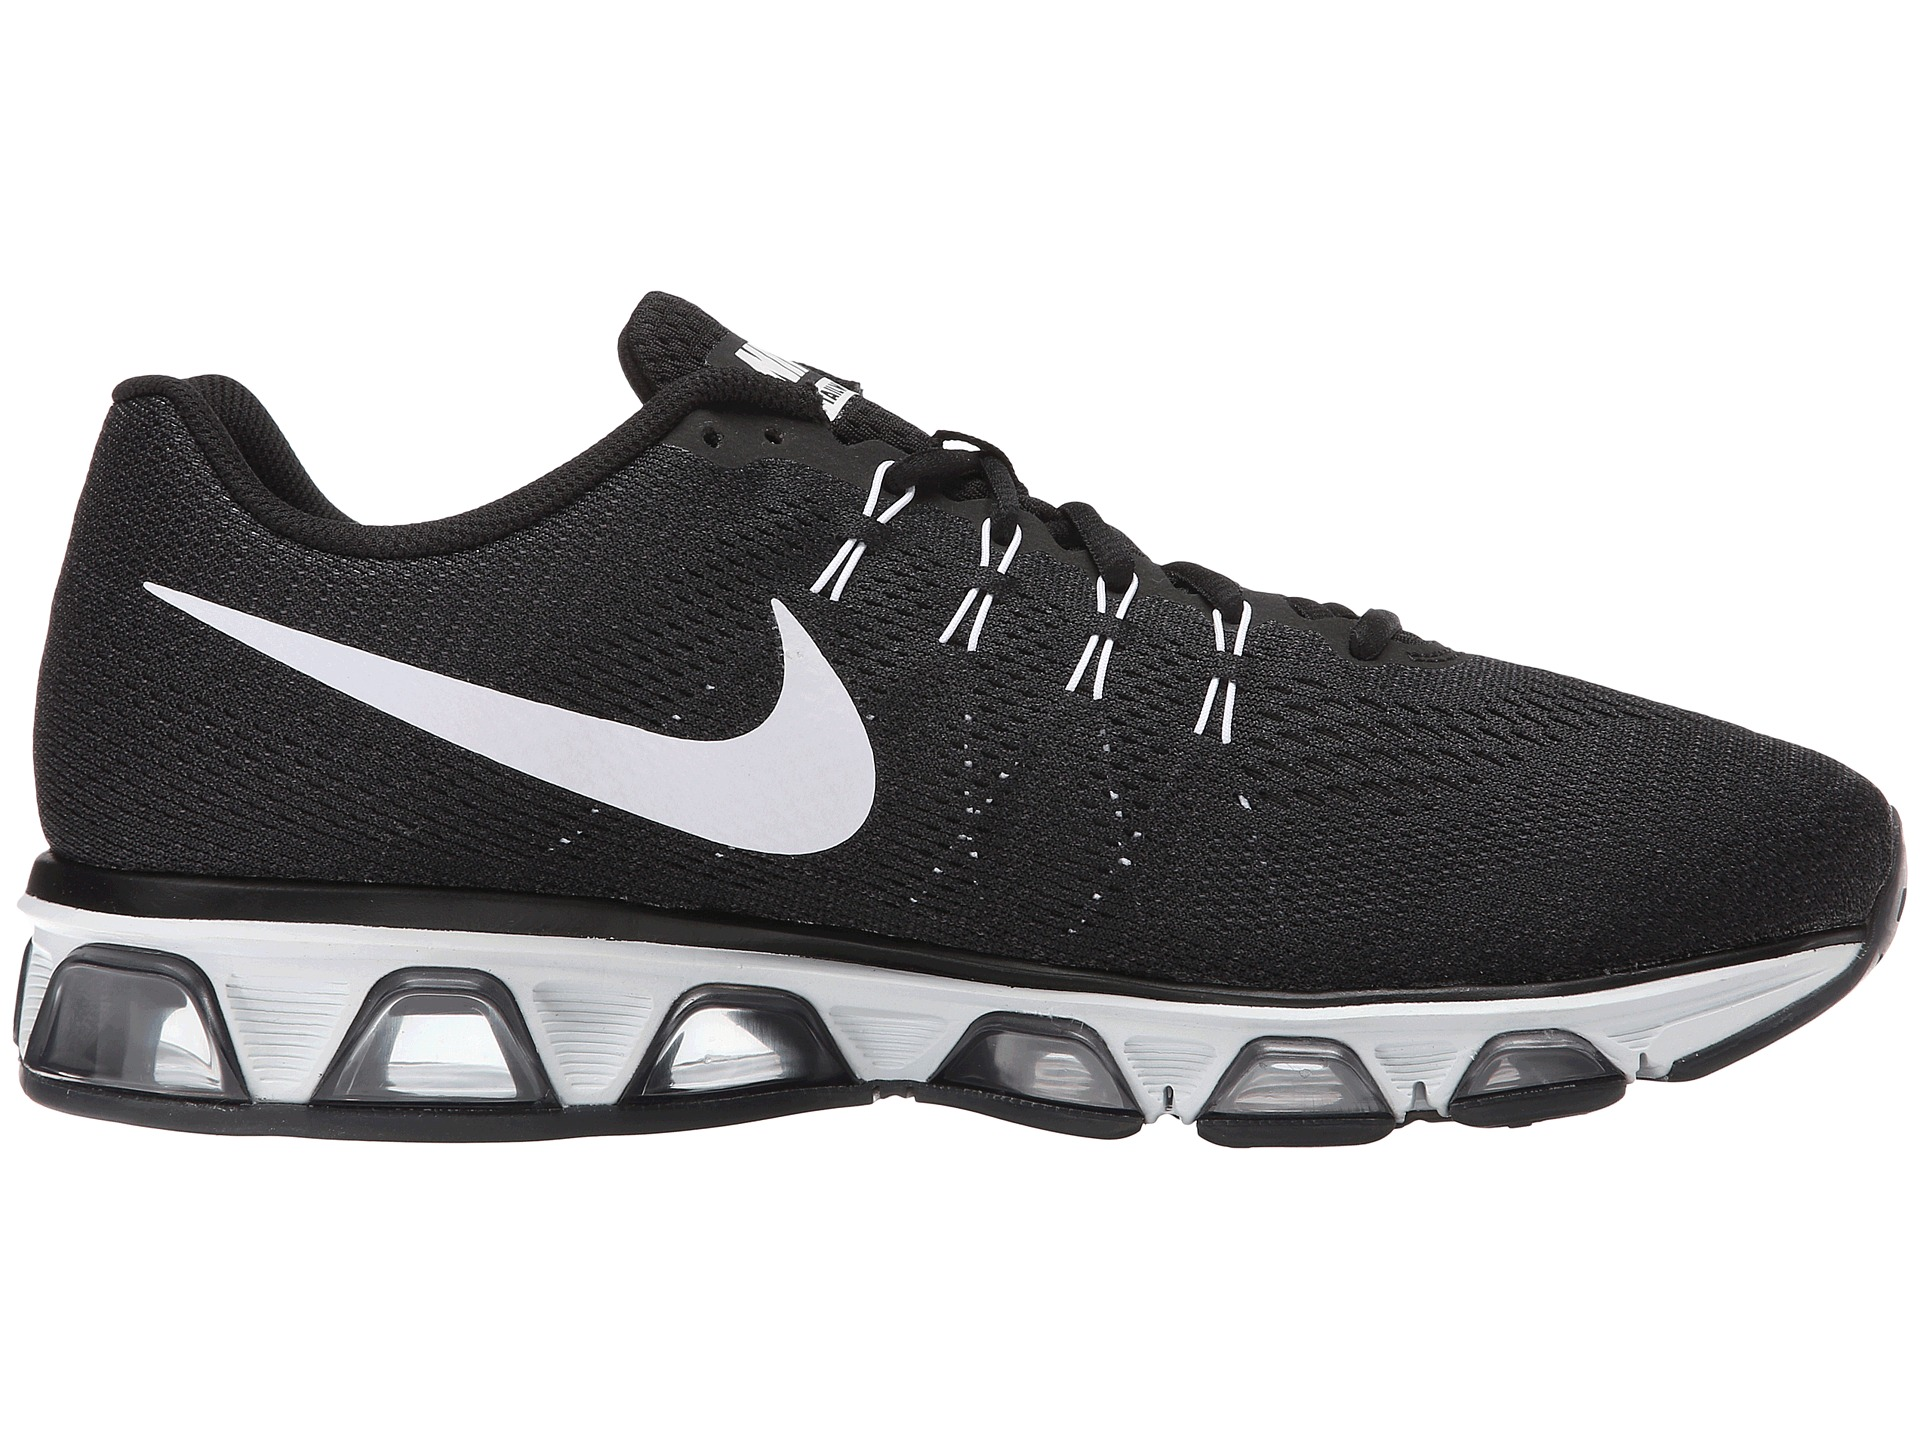 Women's Nike Air Max Tailwind 7 Running Shoes Black